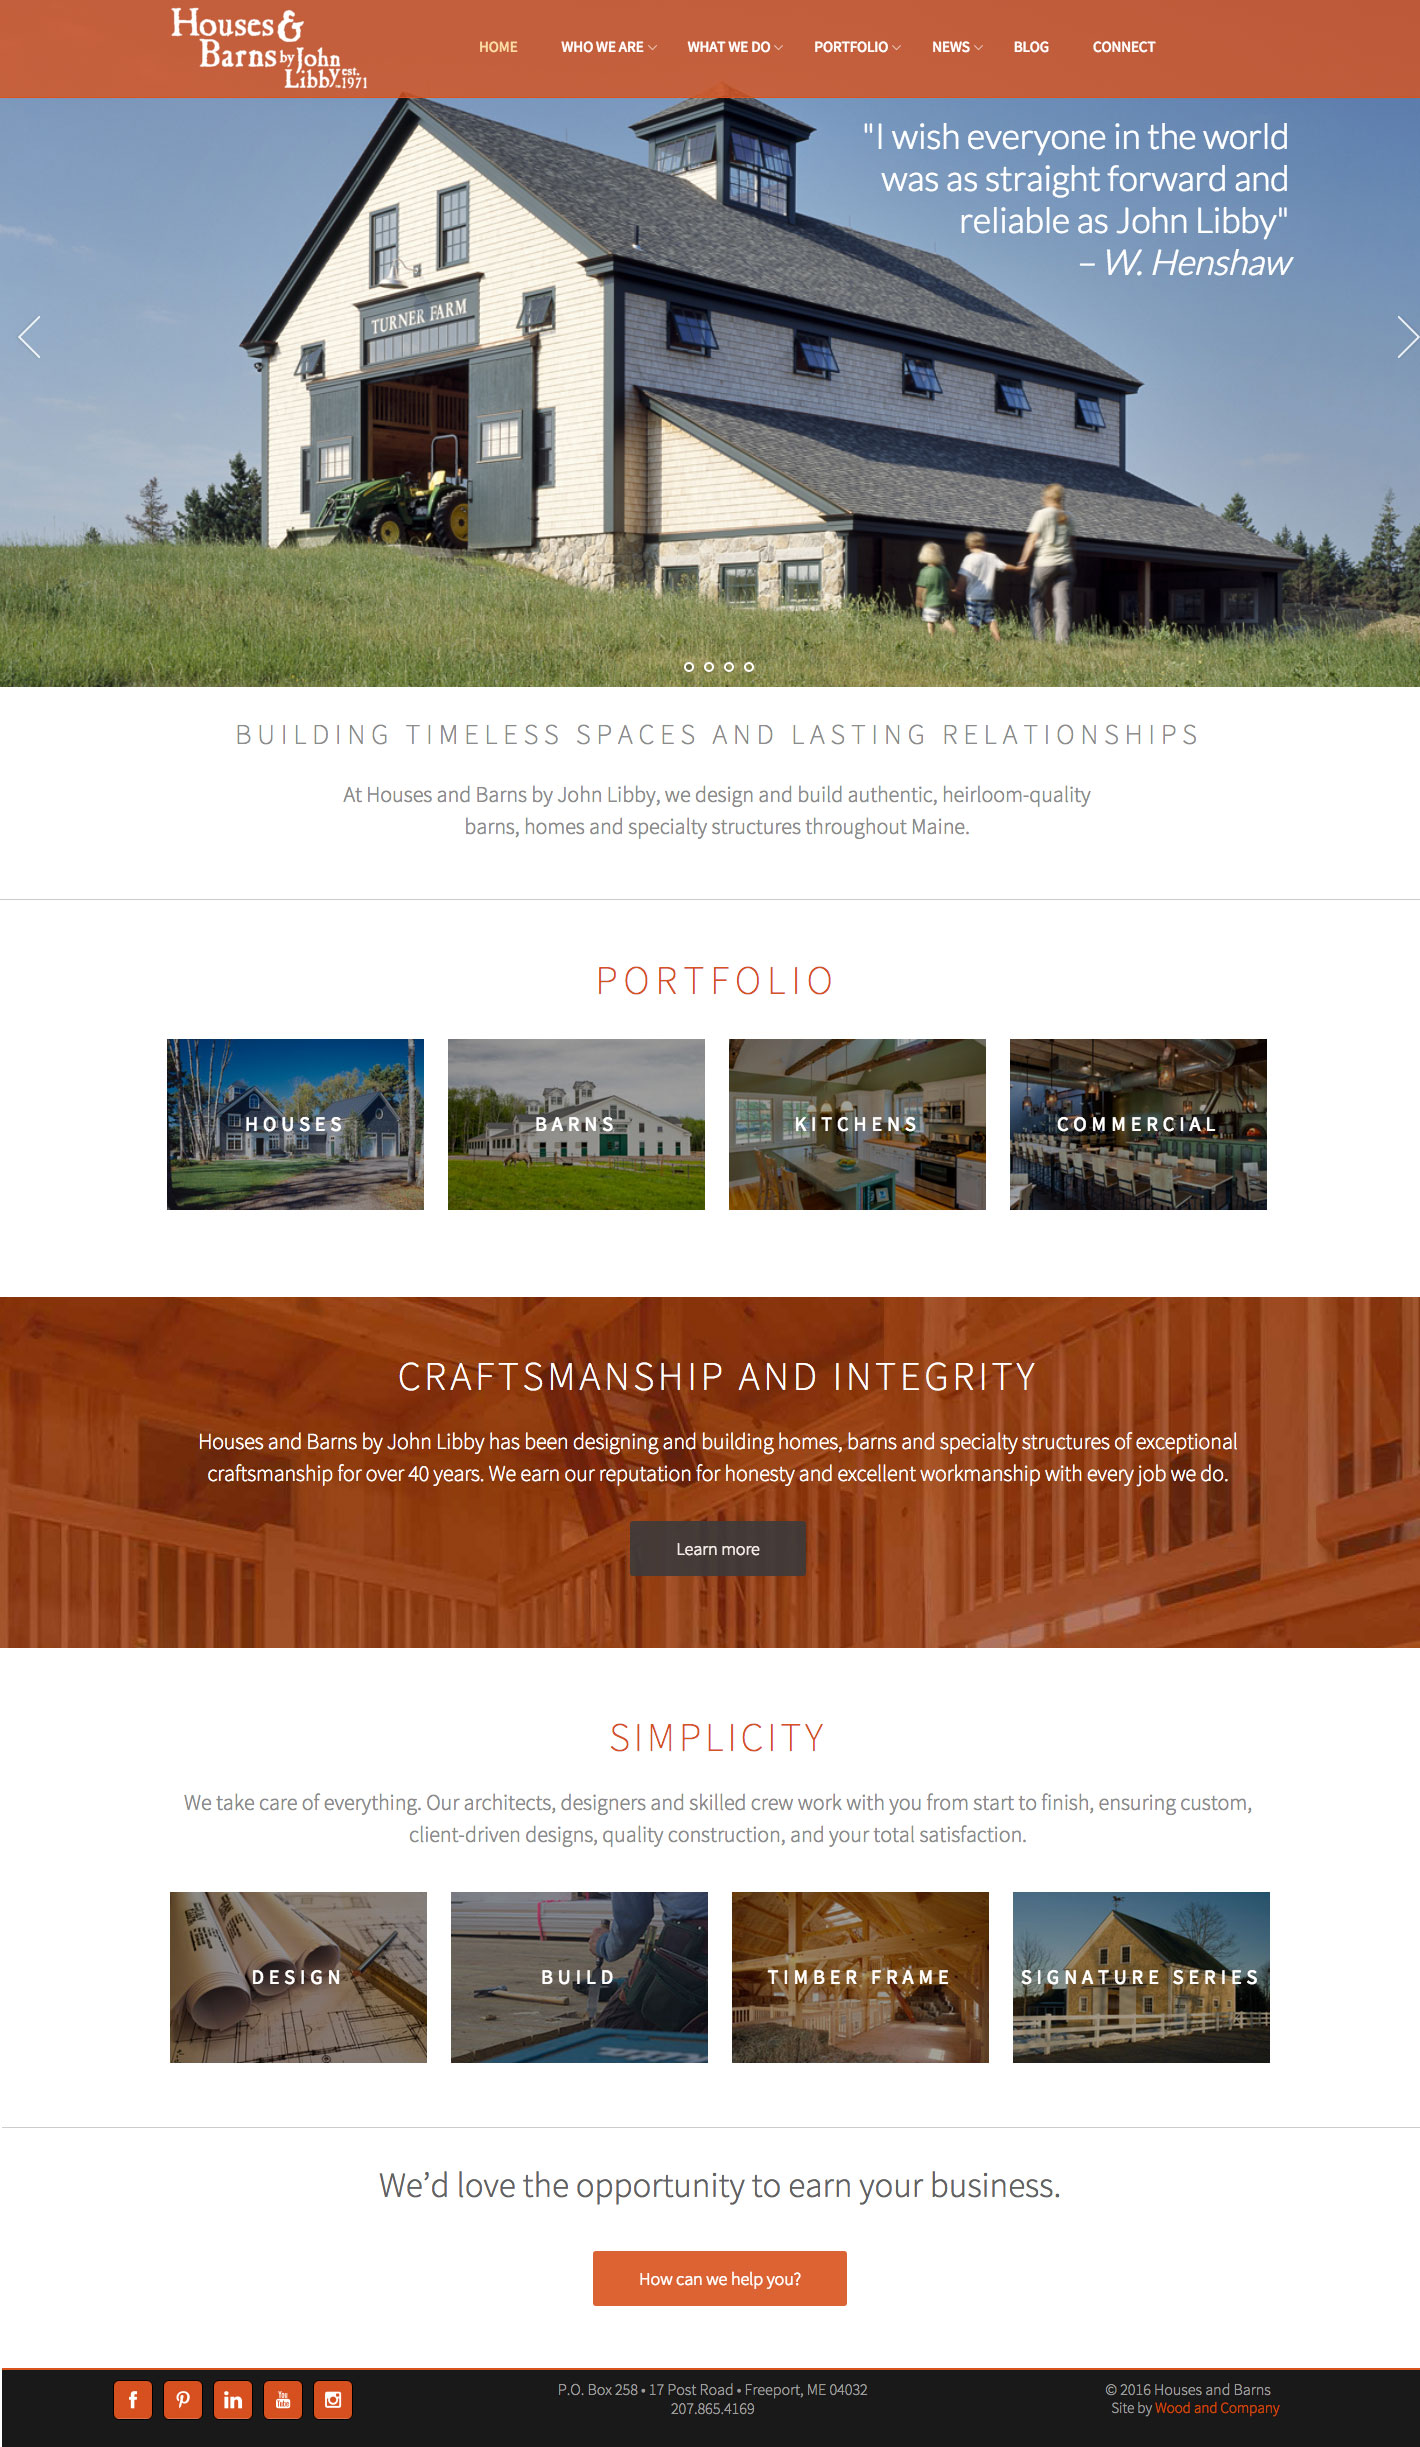 HOuses & Barns home page